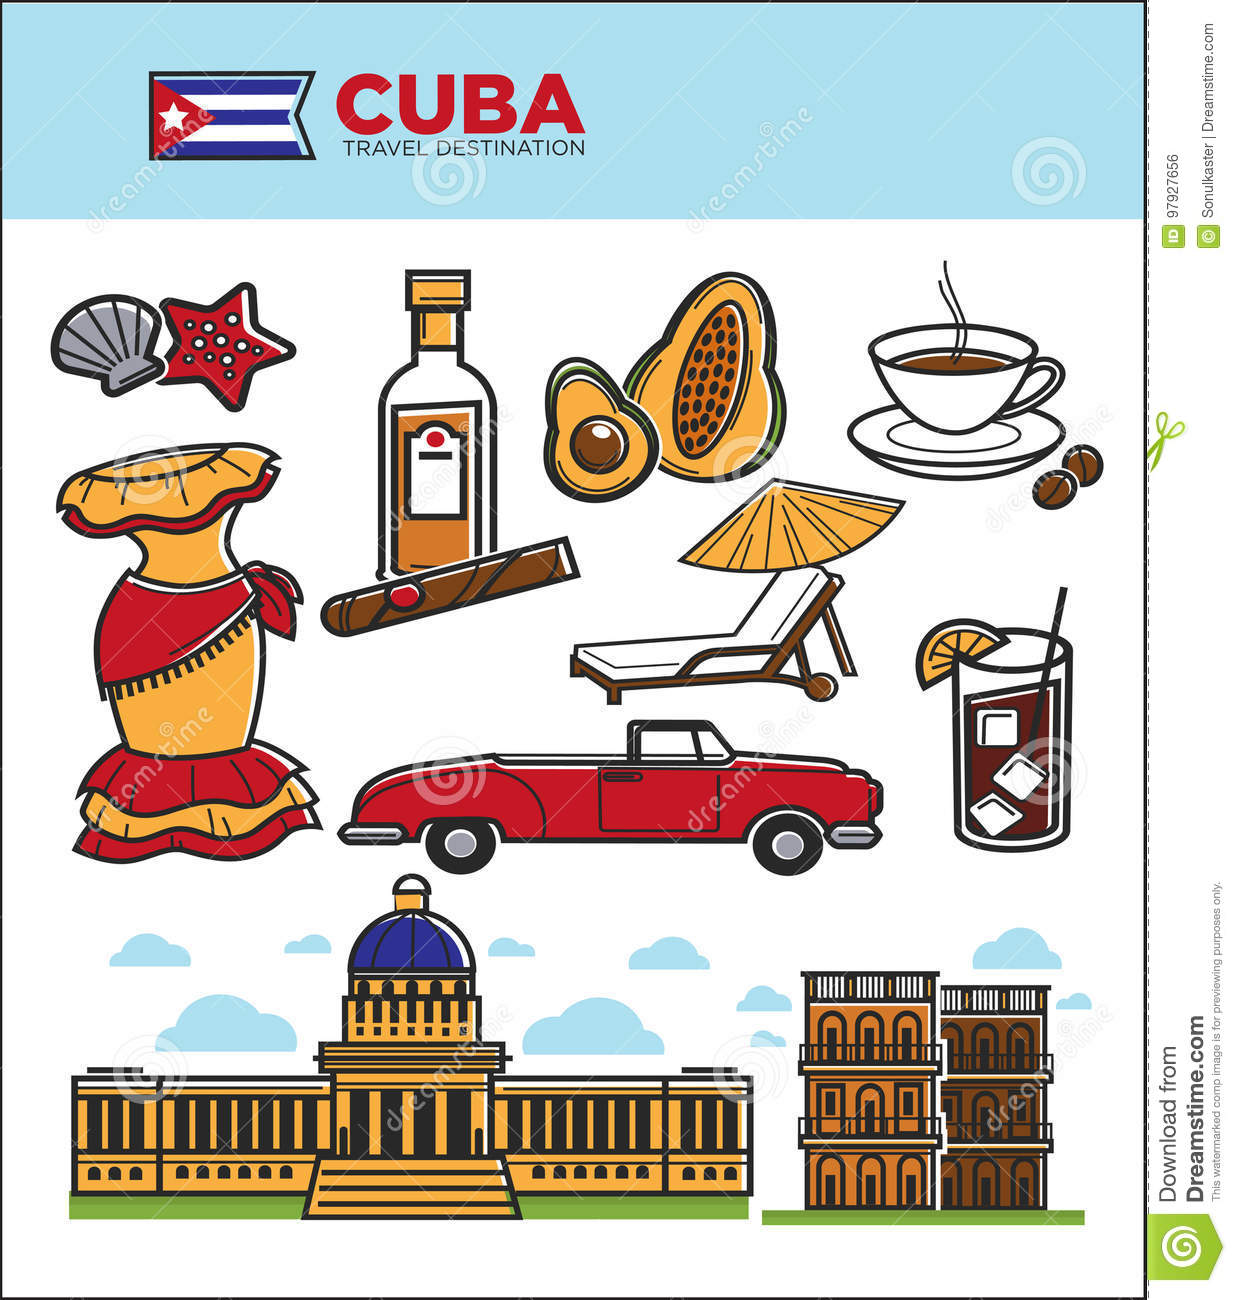 Cuba Travel Landmarks Symbols And Tourist Sightseeing Vector Icons